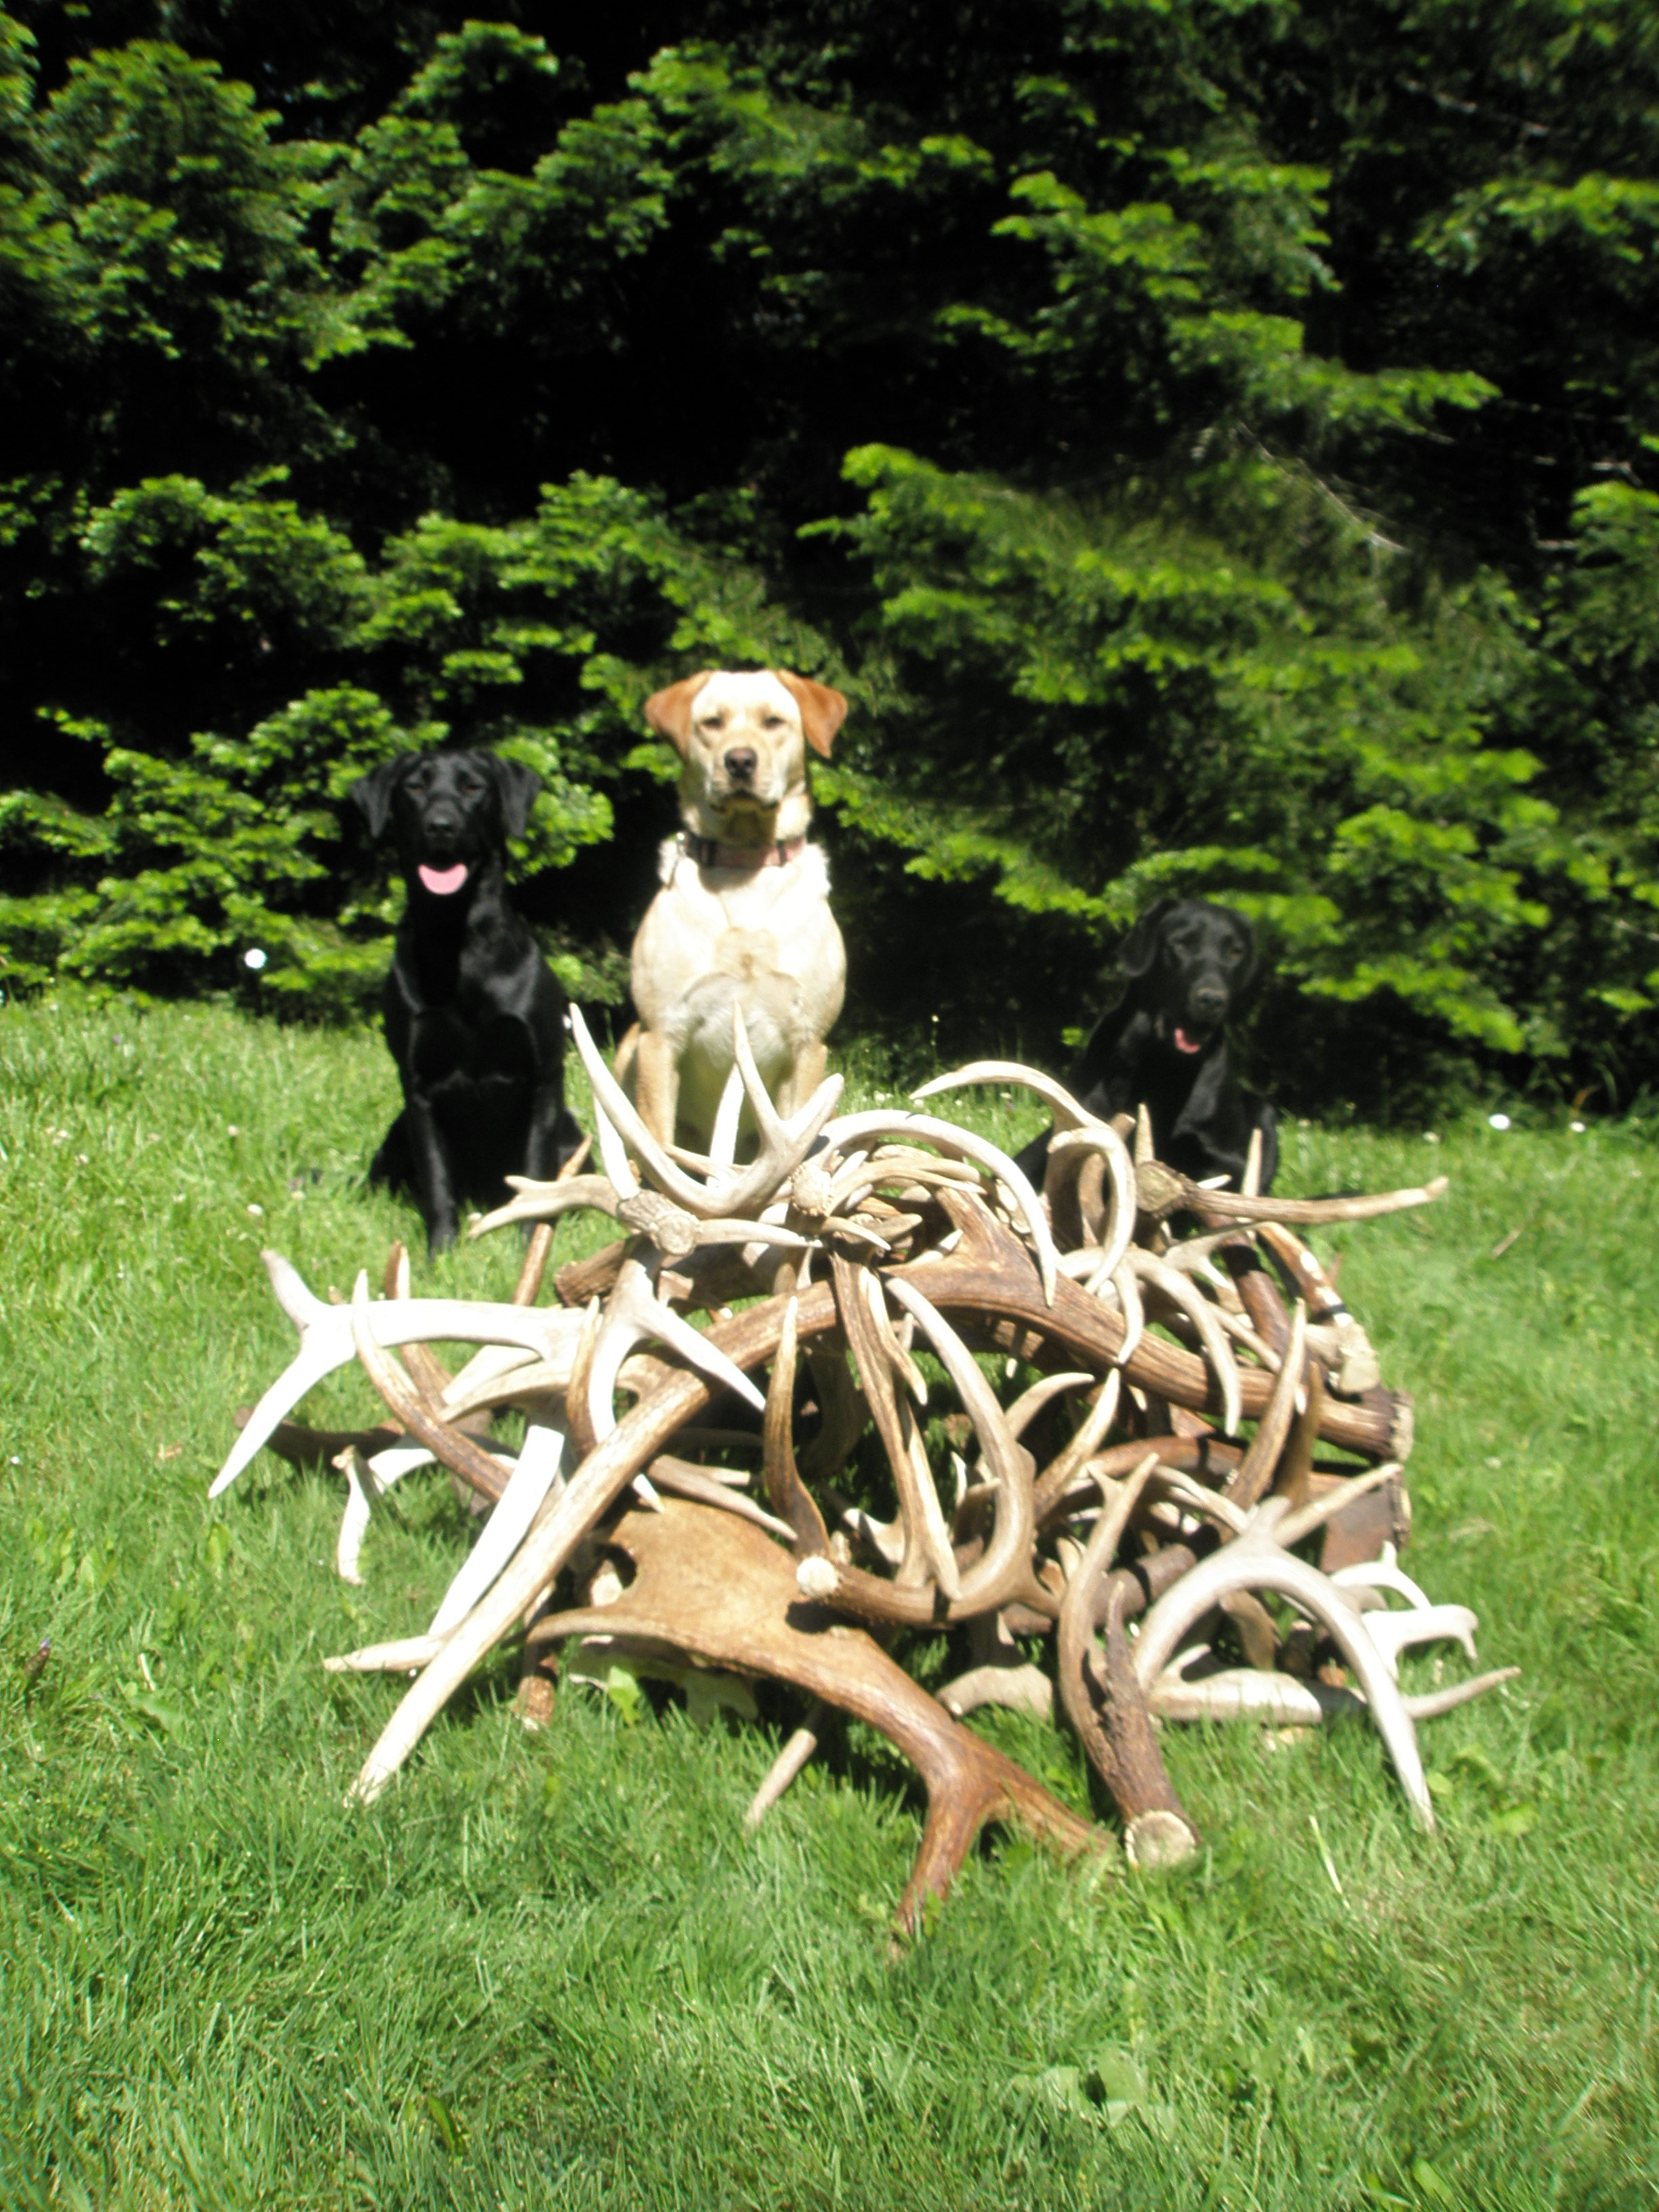 North idaho shed antler dogs trained horn hunting labrador retriever